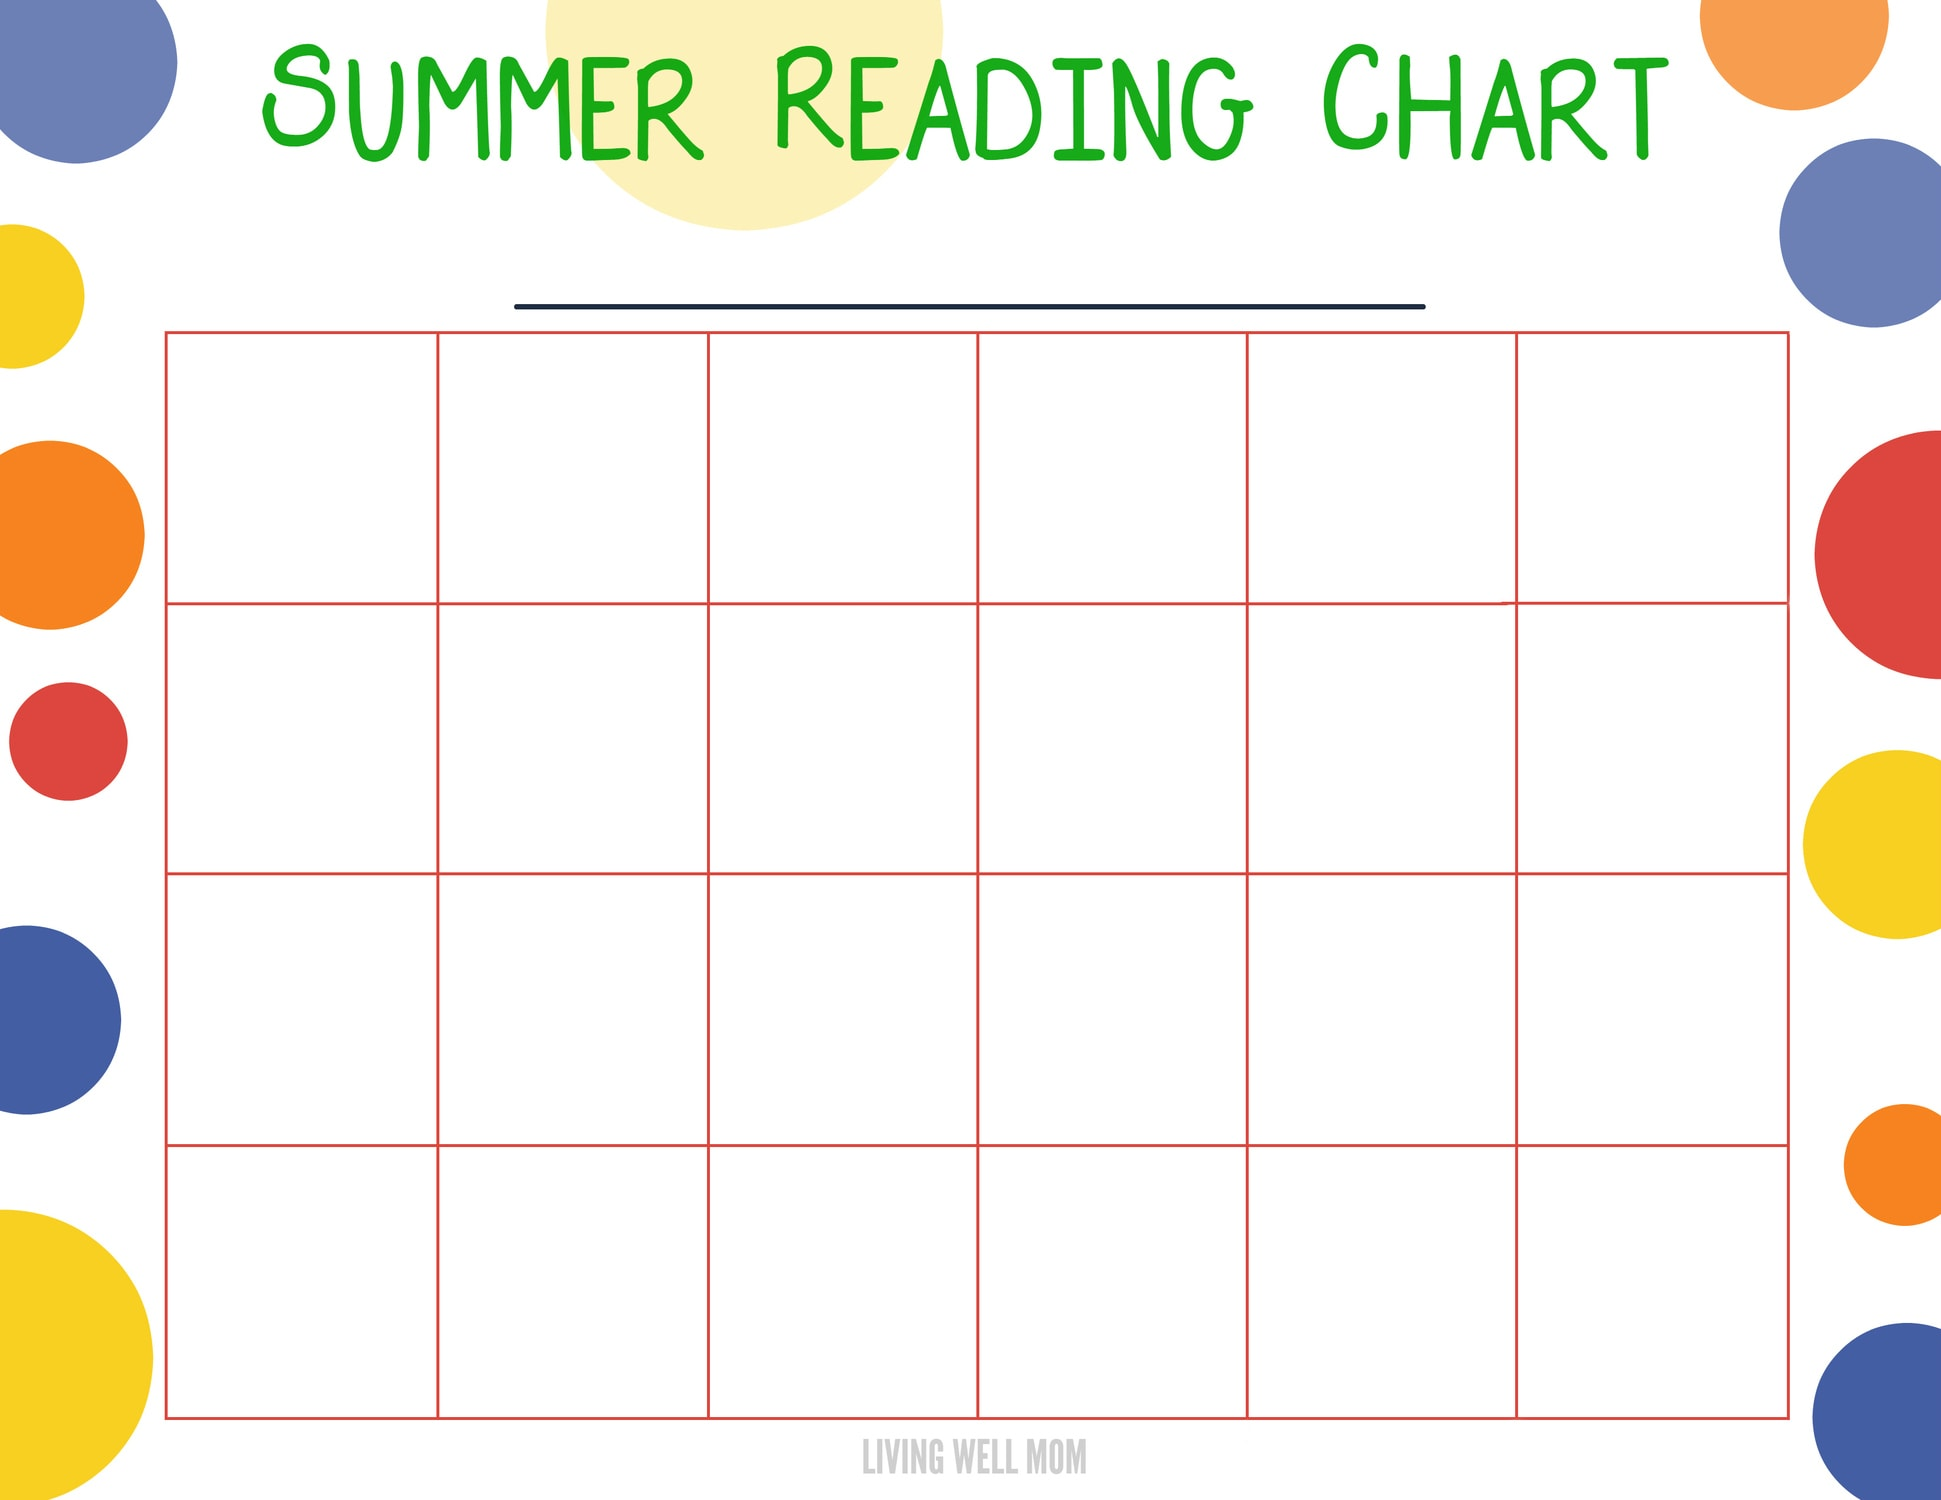 Or Your Summer Reading Chart Here